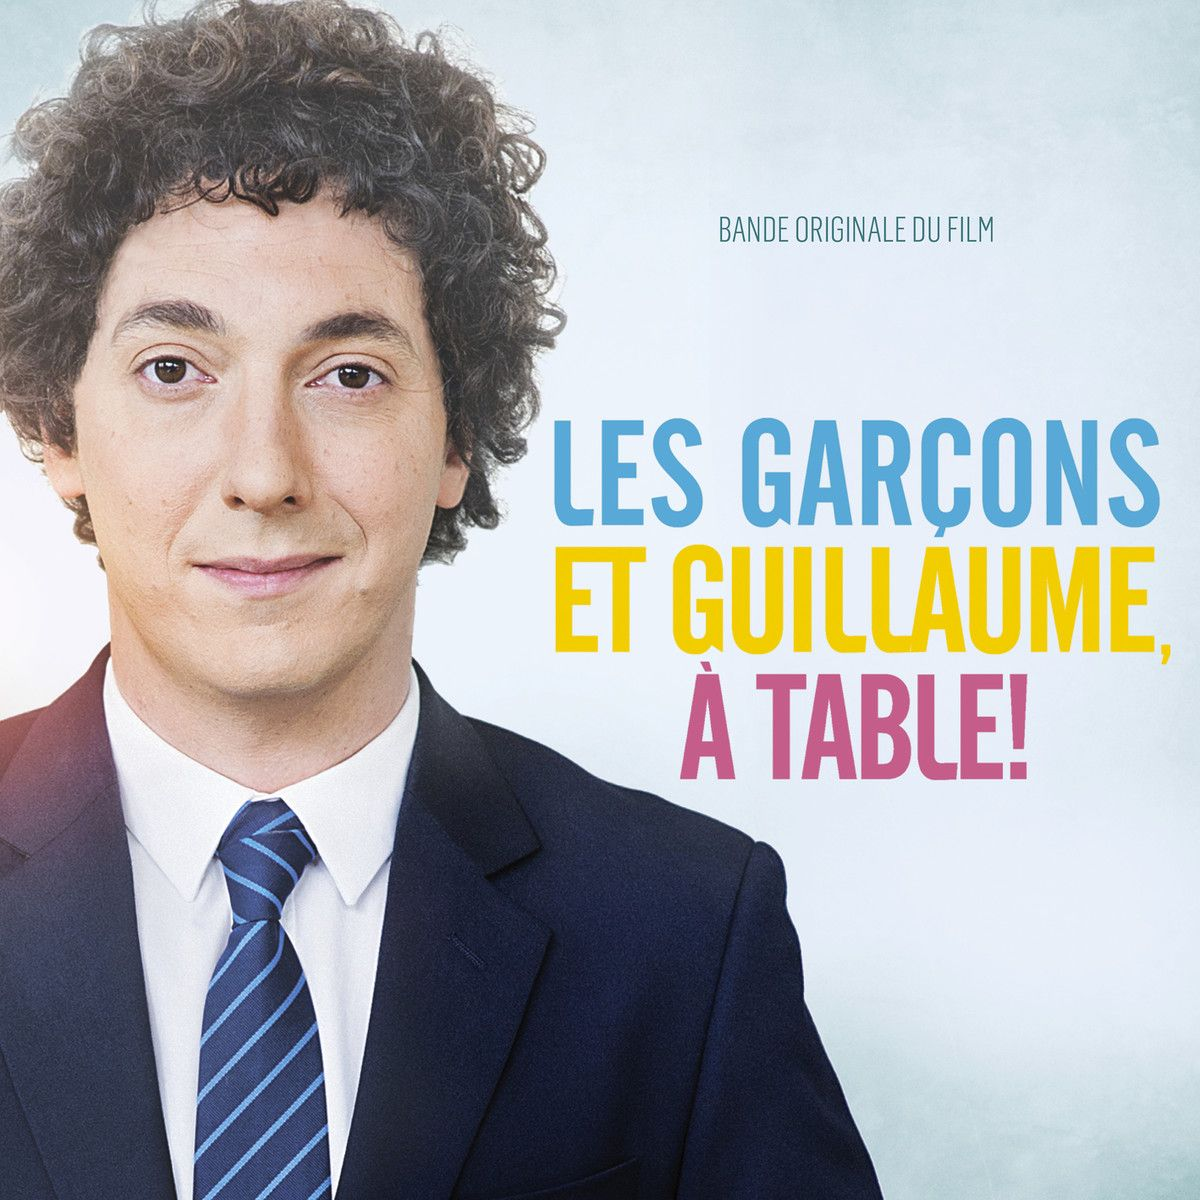 Les gar ons et guillaume table ost various artists - Guillaume et les garcons a table trailer ...